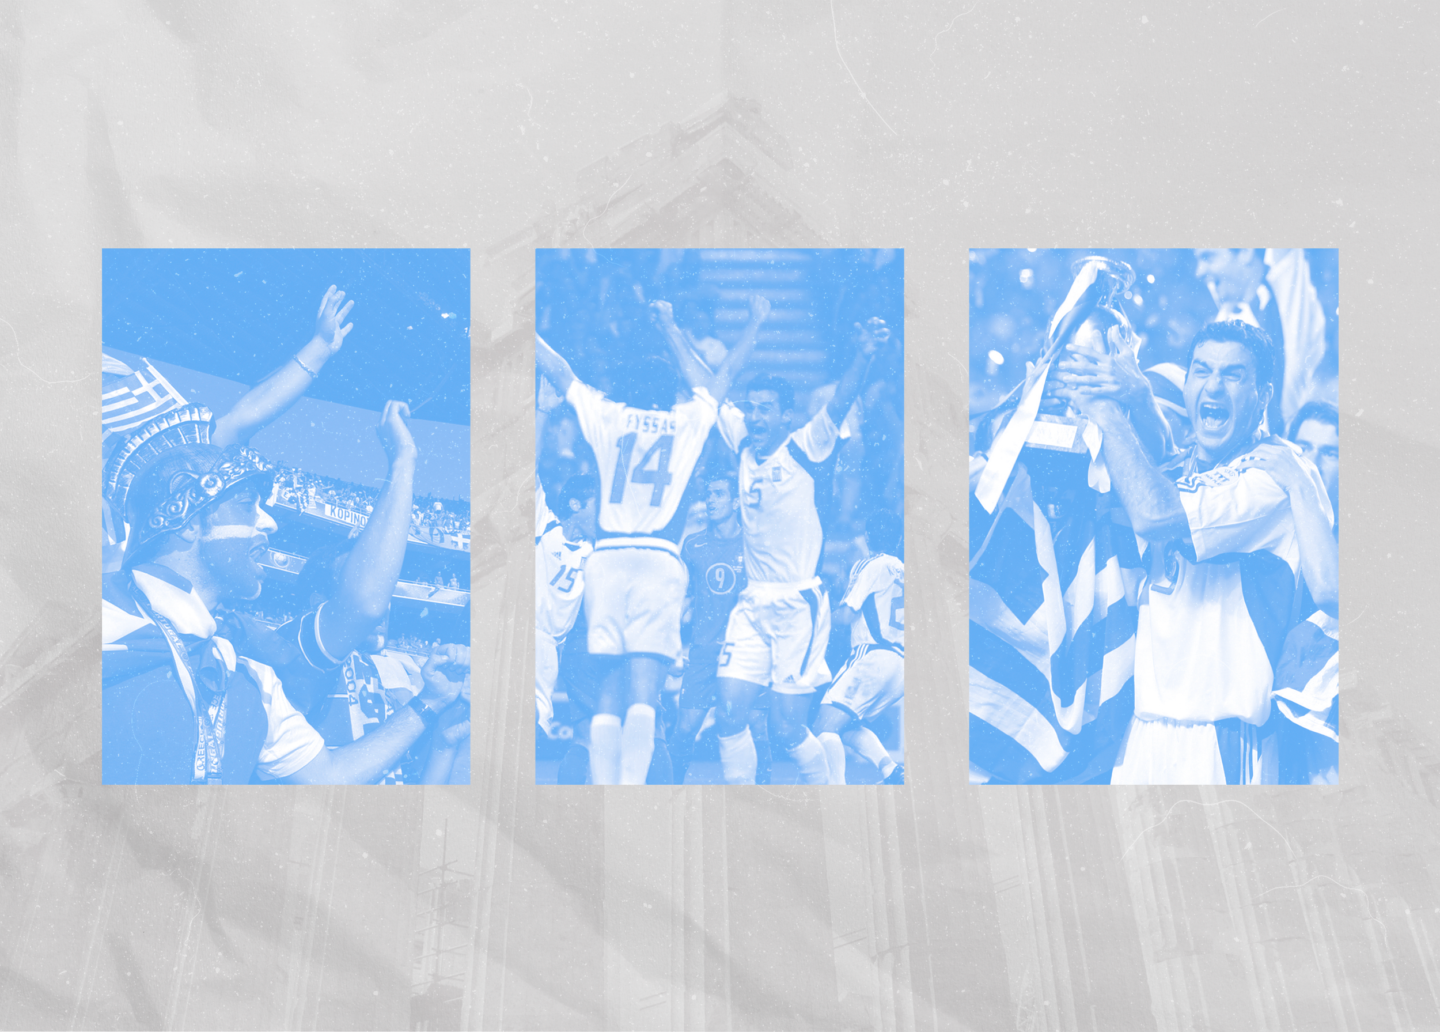 Football's Greatest Underdogs: The story of the Greek national team's Euro 2004 triumph